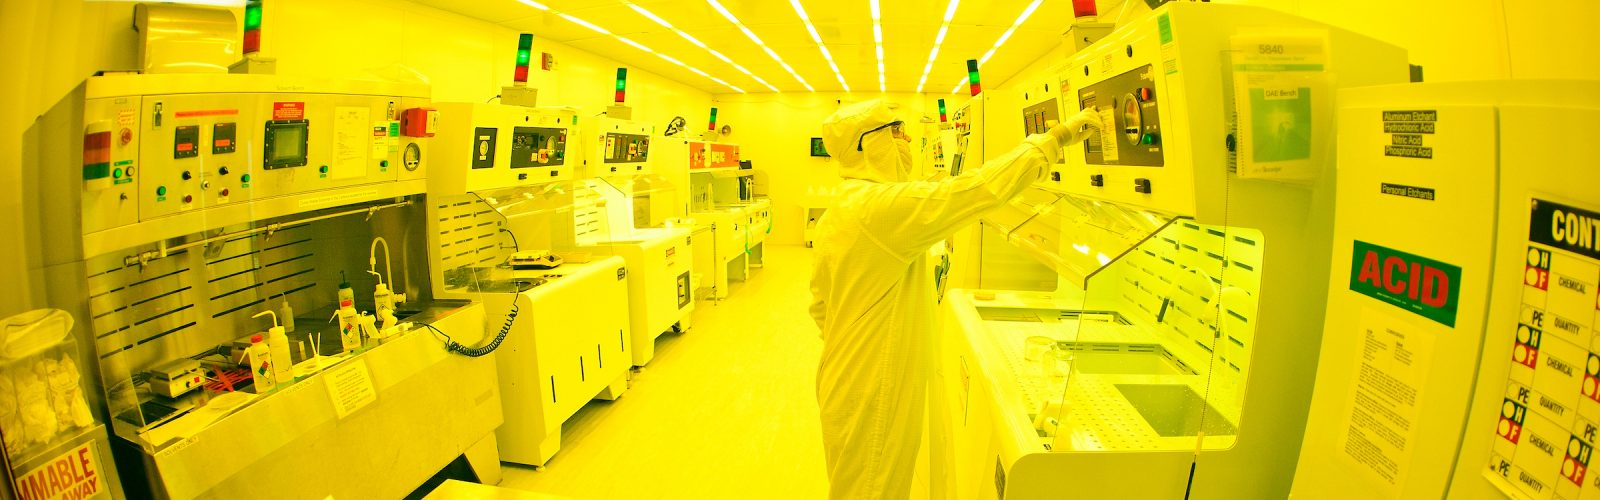 a very yellow-hued image of a person in a full-body clean suit working in a clean room